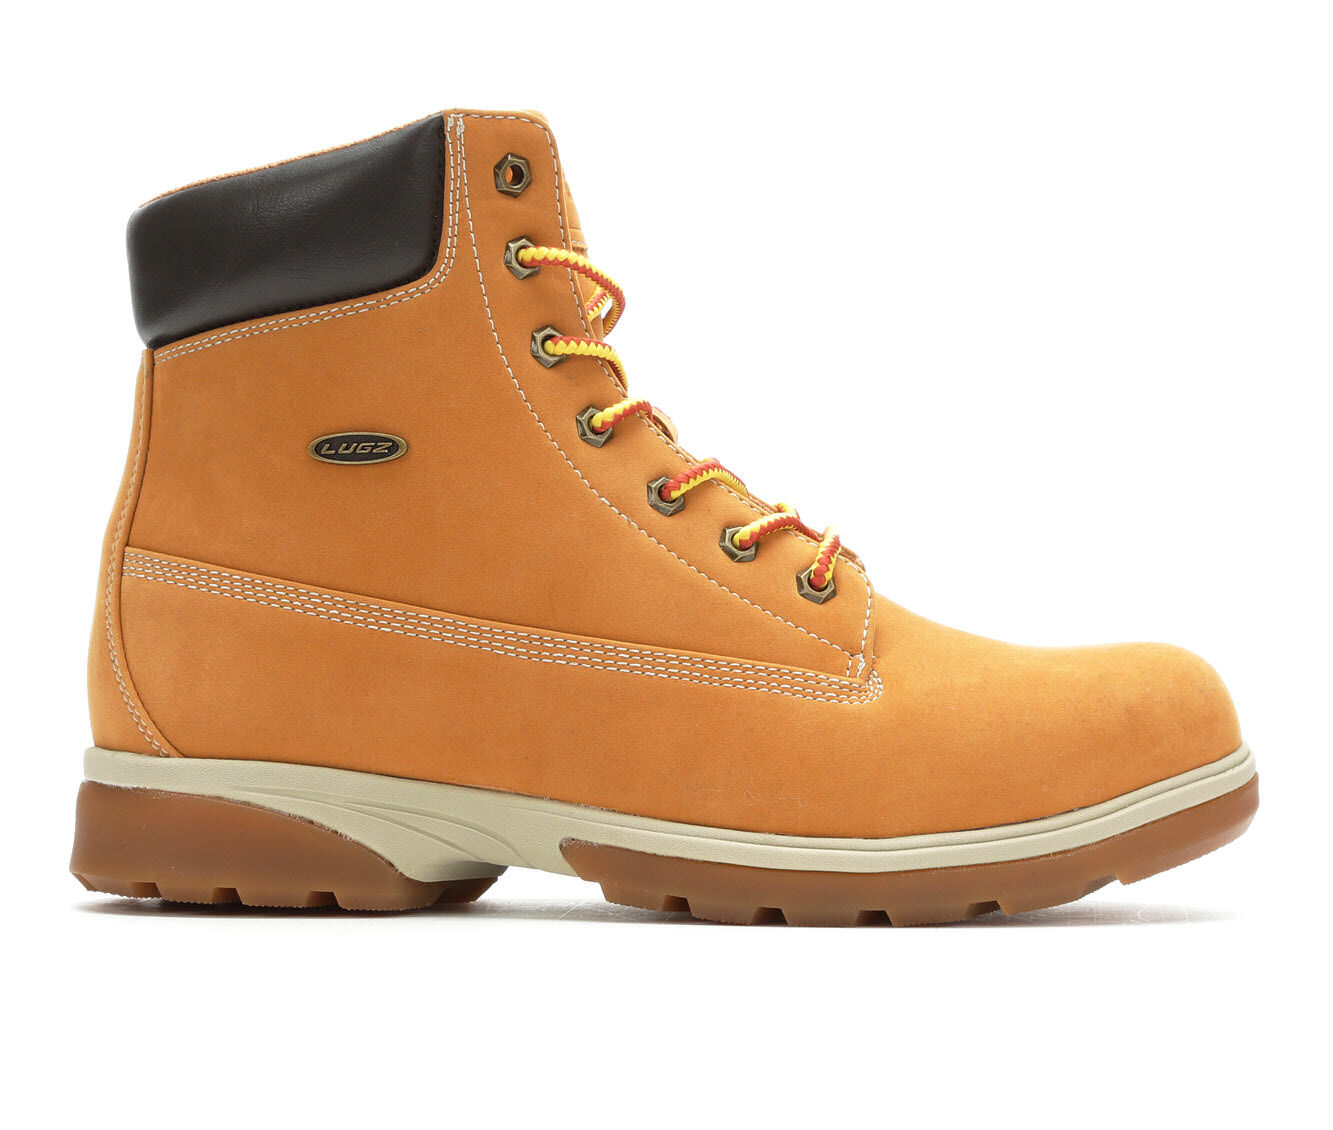 latest series Men's Lugz Drifter Zeolite Hi Boots Golden Wheat